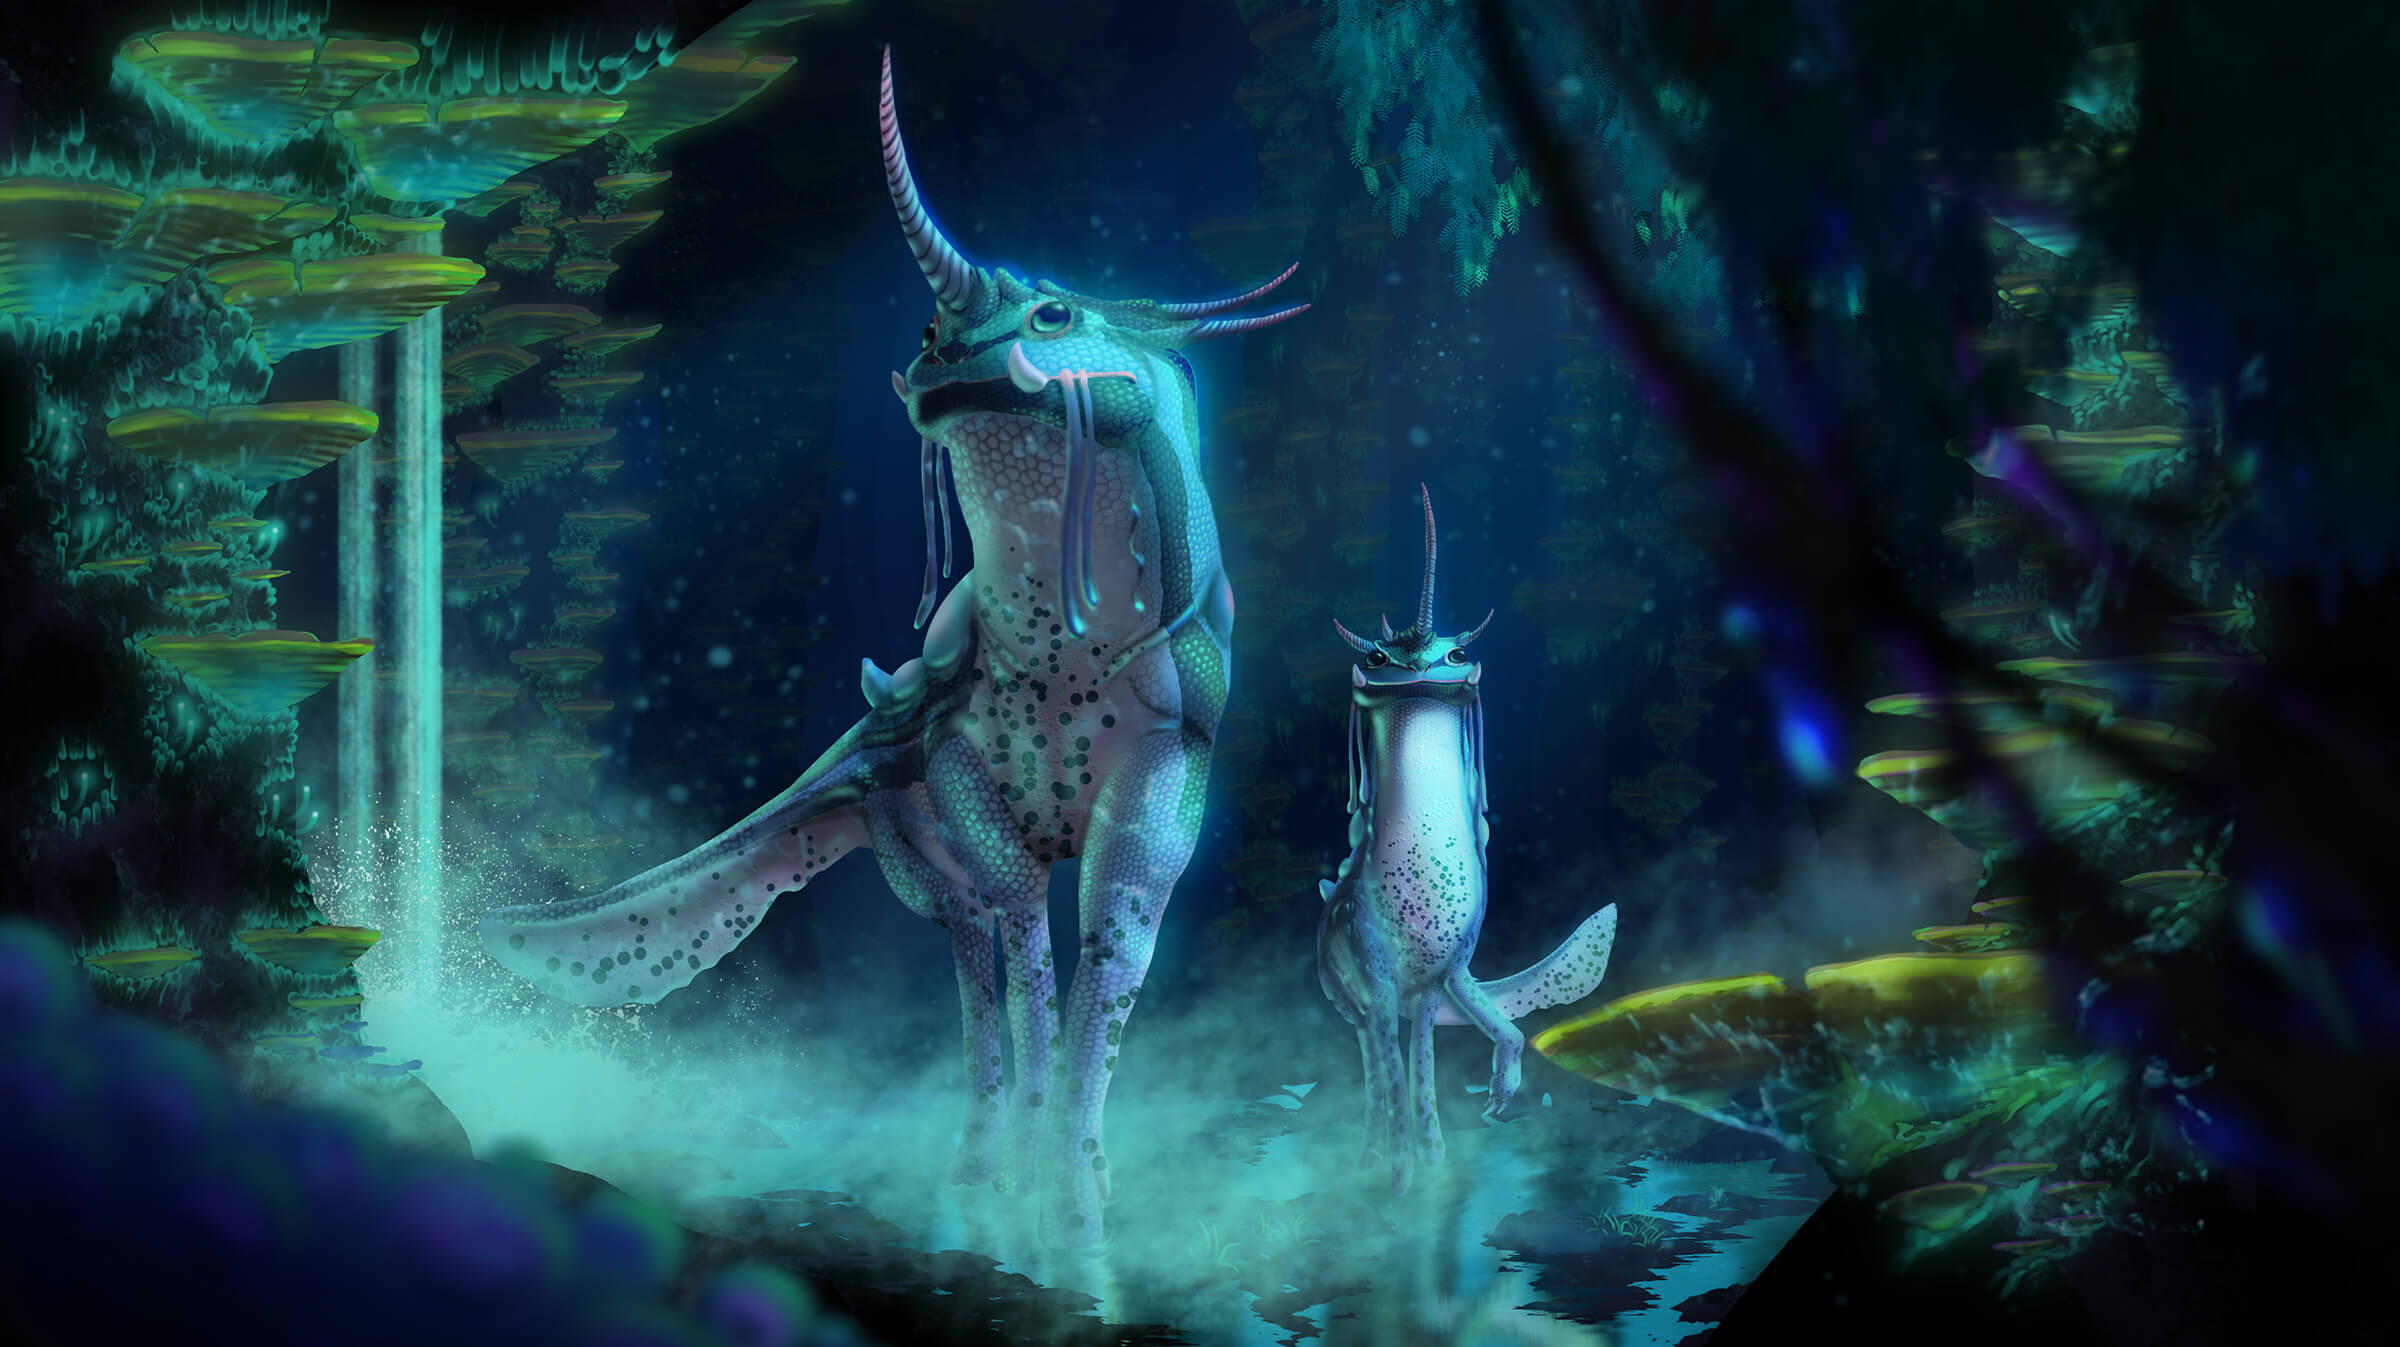 computer-generated 3D models of two unicorn-lizard hybrid animals in a mystical blue and green forest